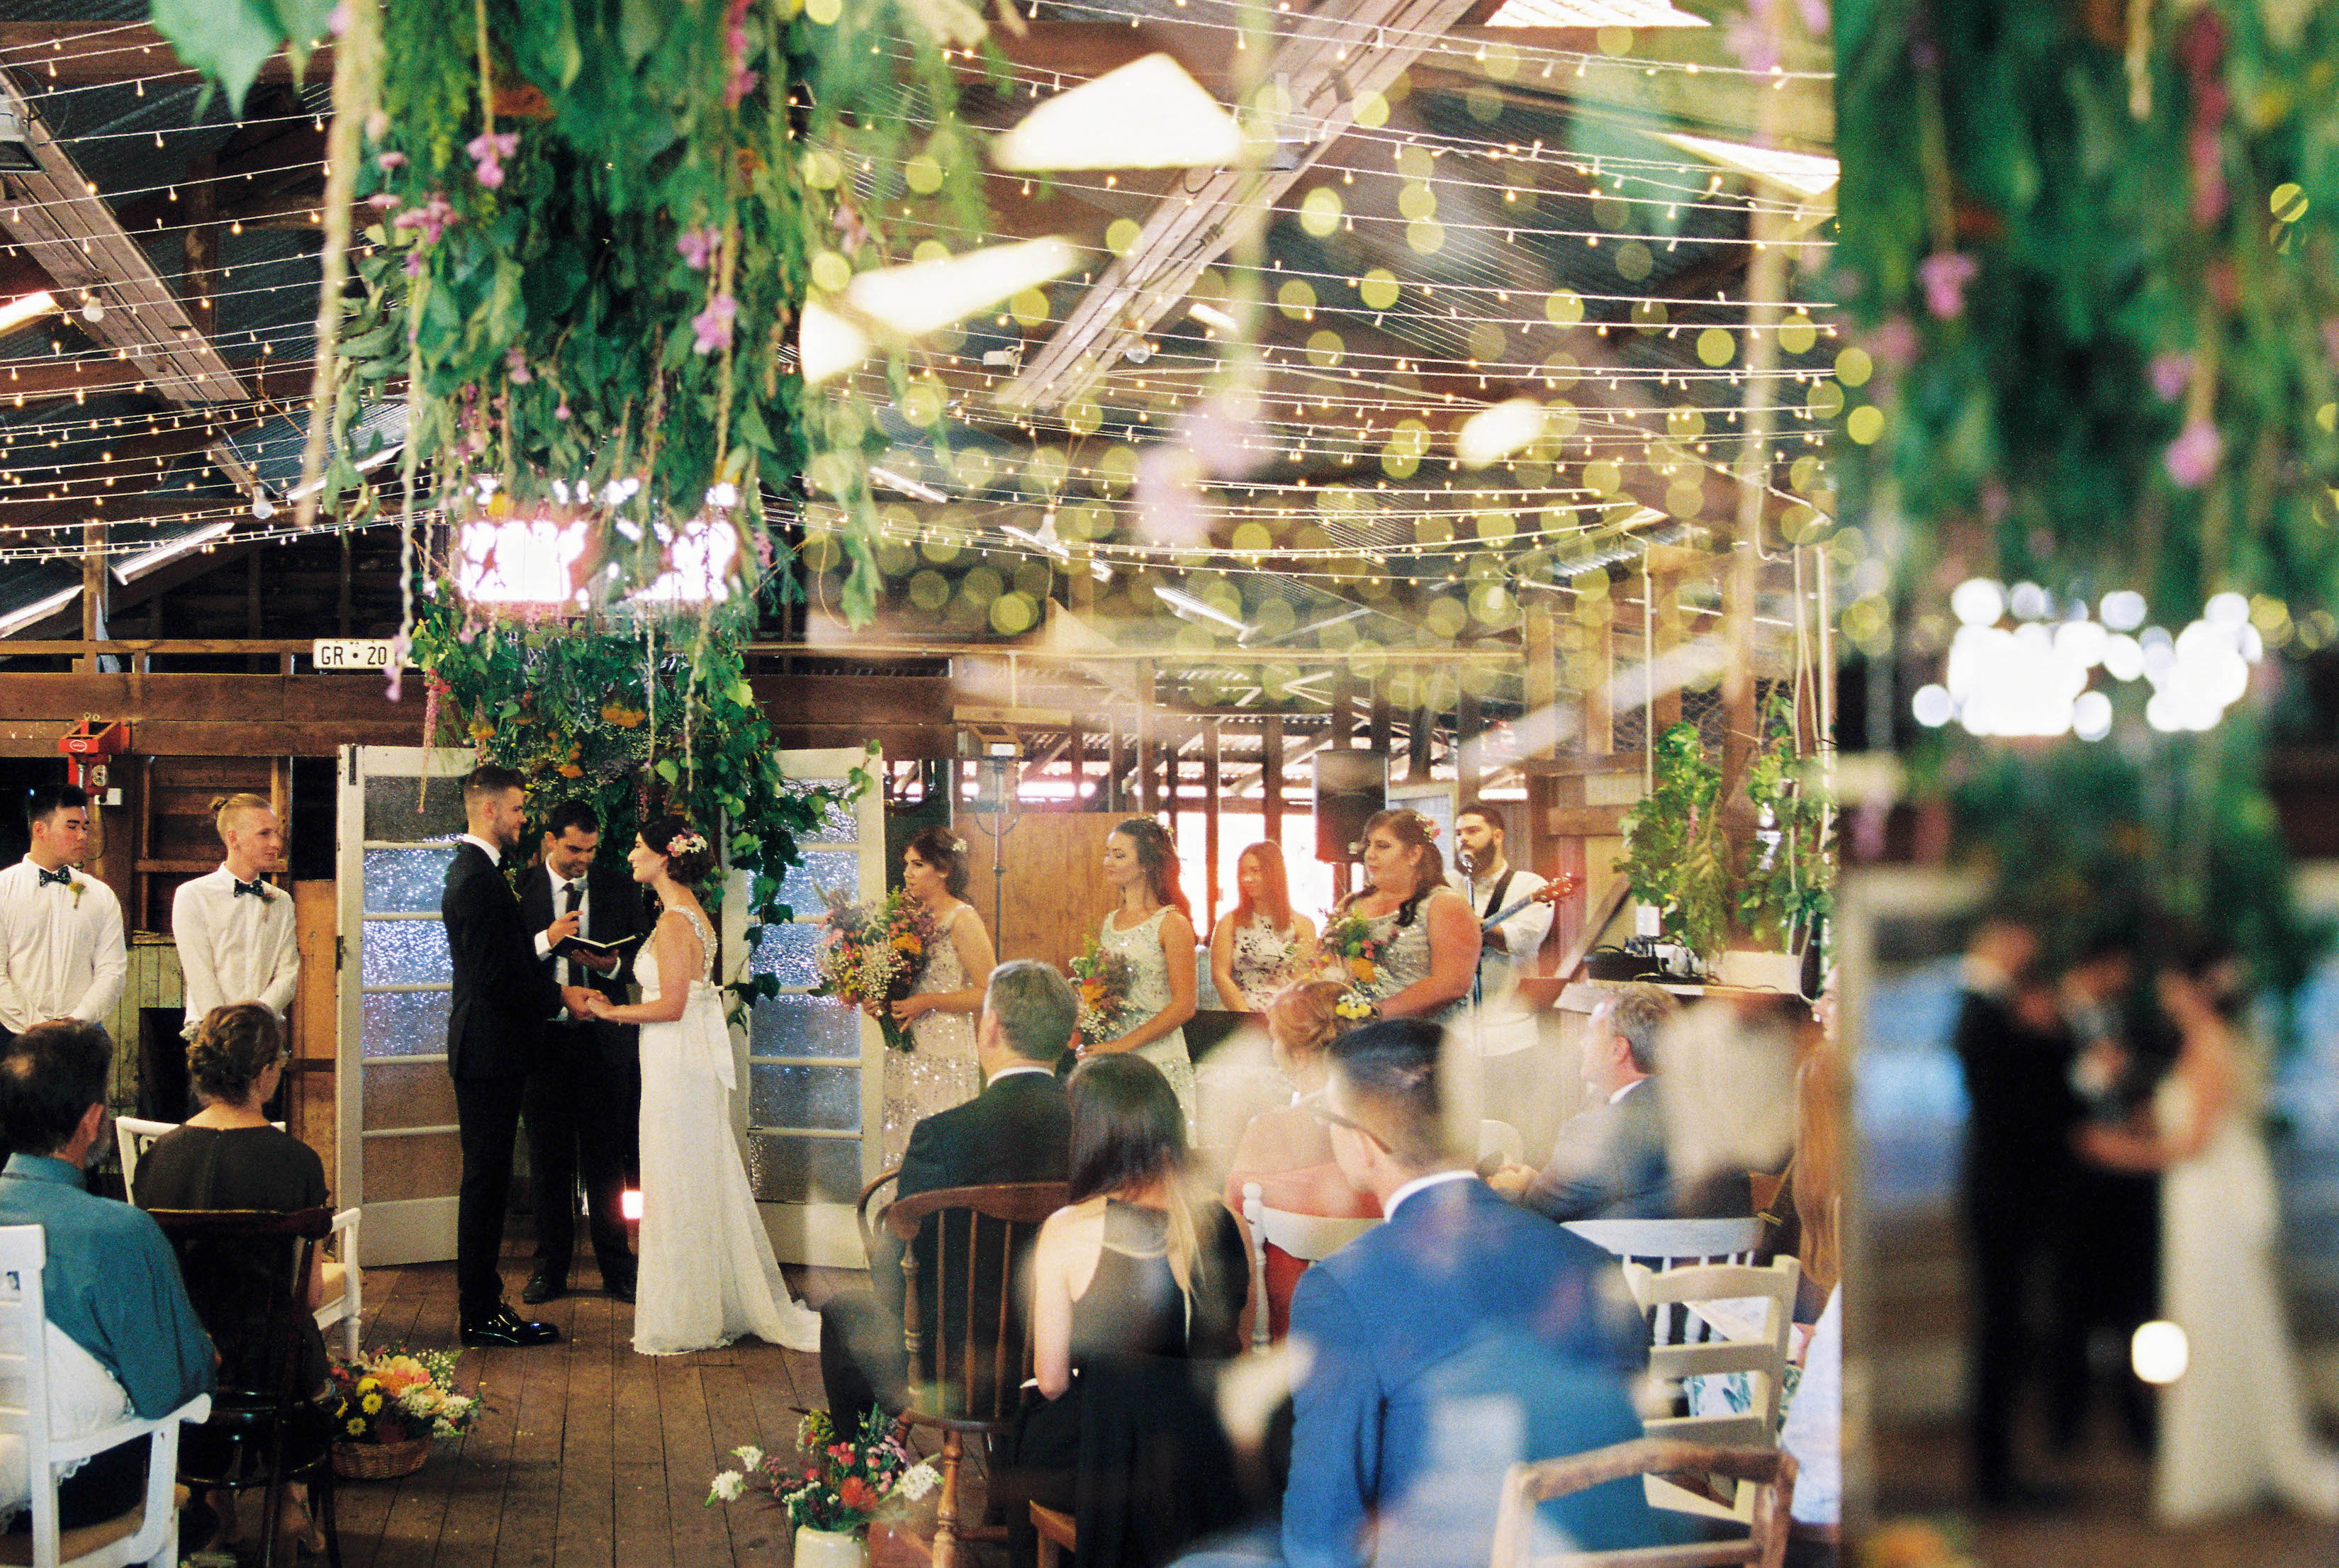 A triple exposure of a country wedding ceremony taken on film by Rhianna May, Australian Italian Wedding Photography